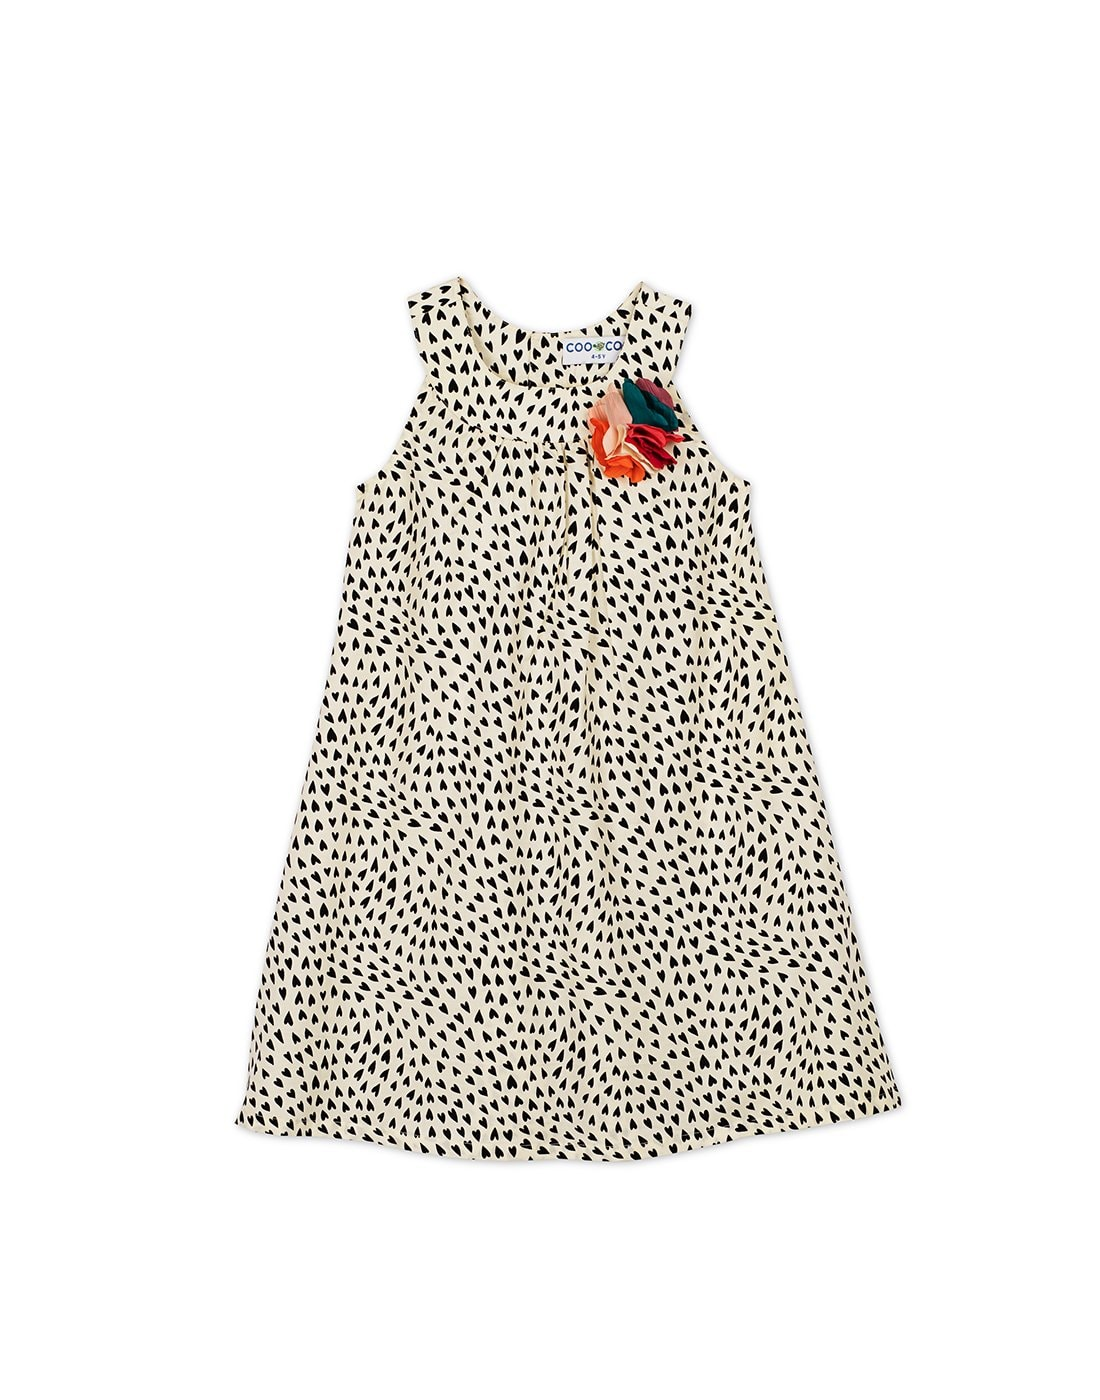 The Alekha B/W Heart Dress